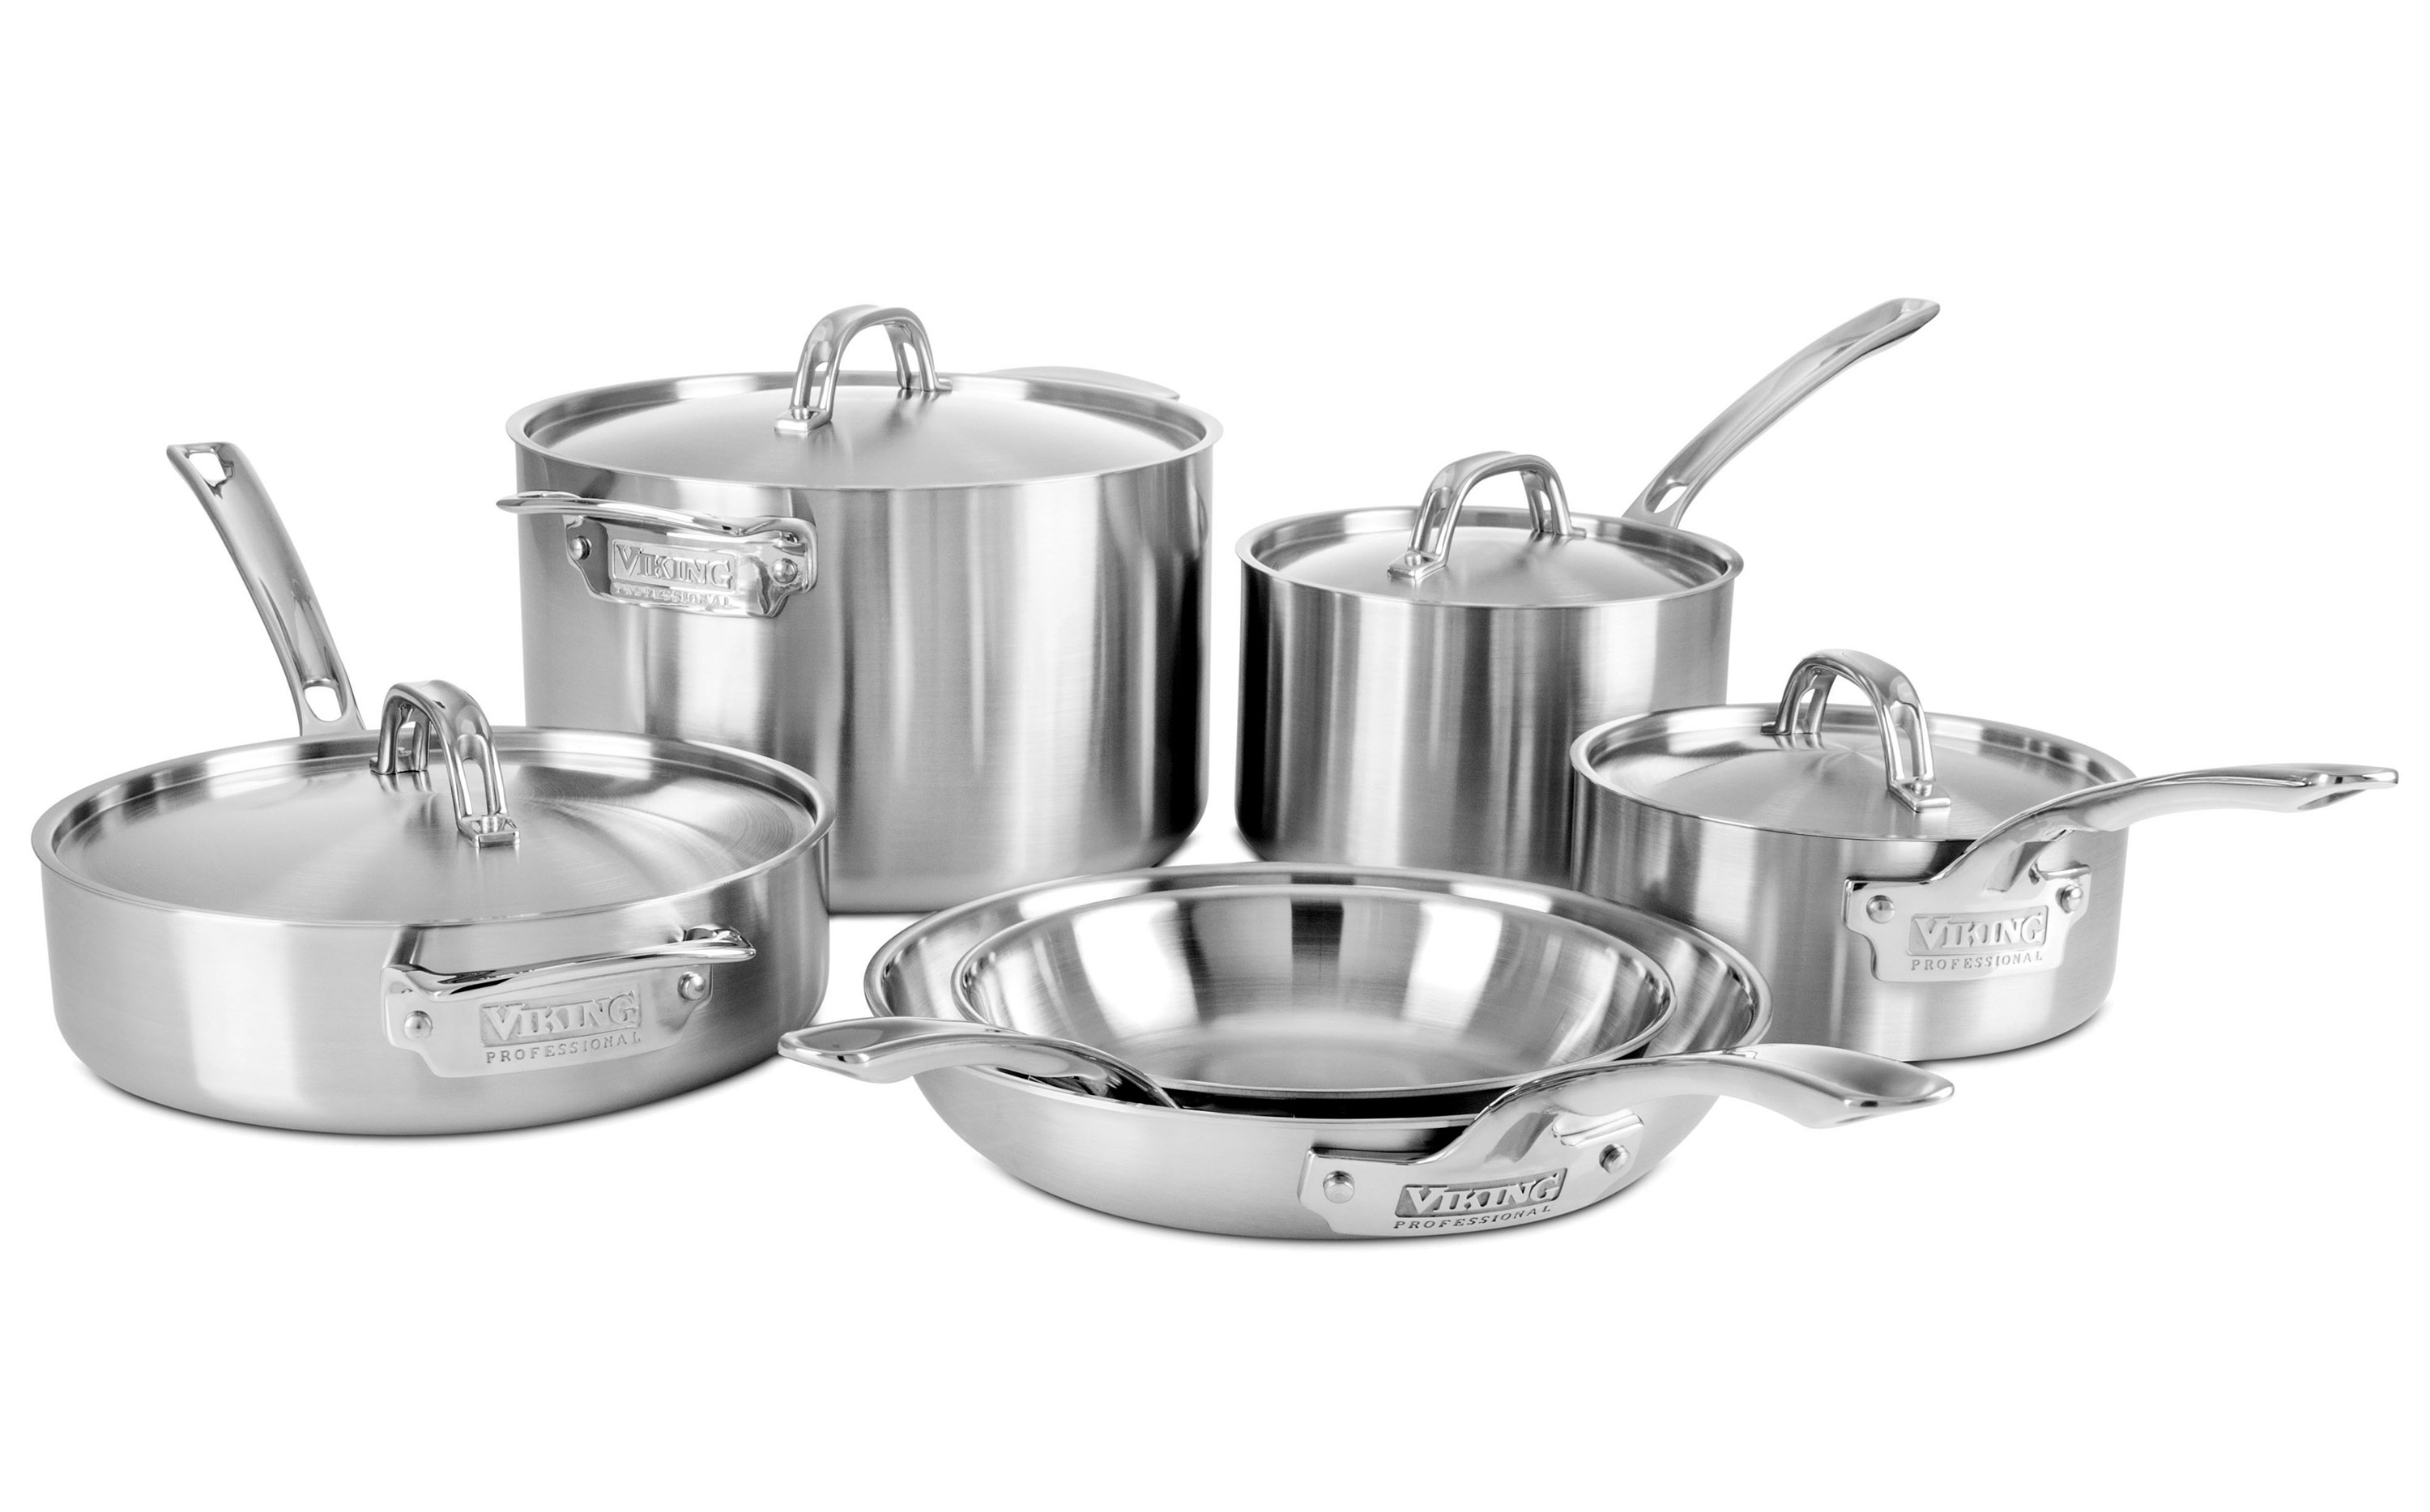 Viking Professional 5-ply Stainless Steel Cookware Set, 10-piece ...